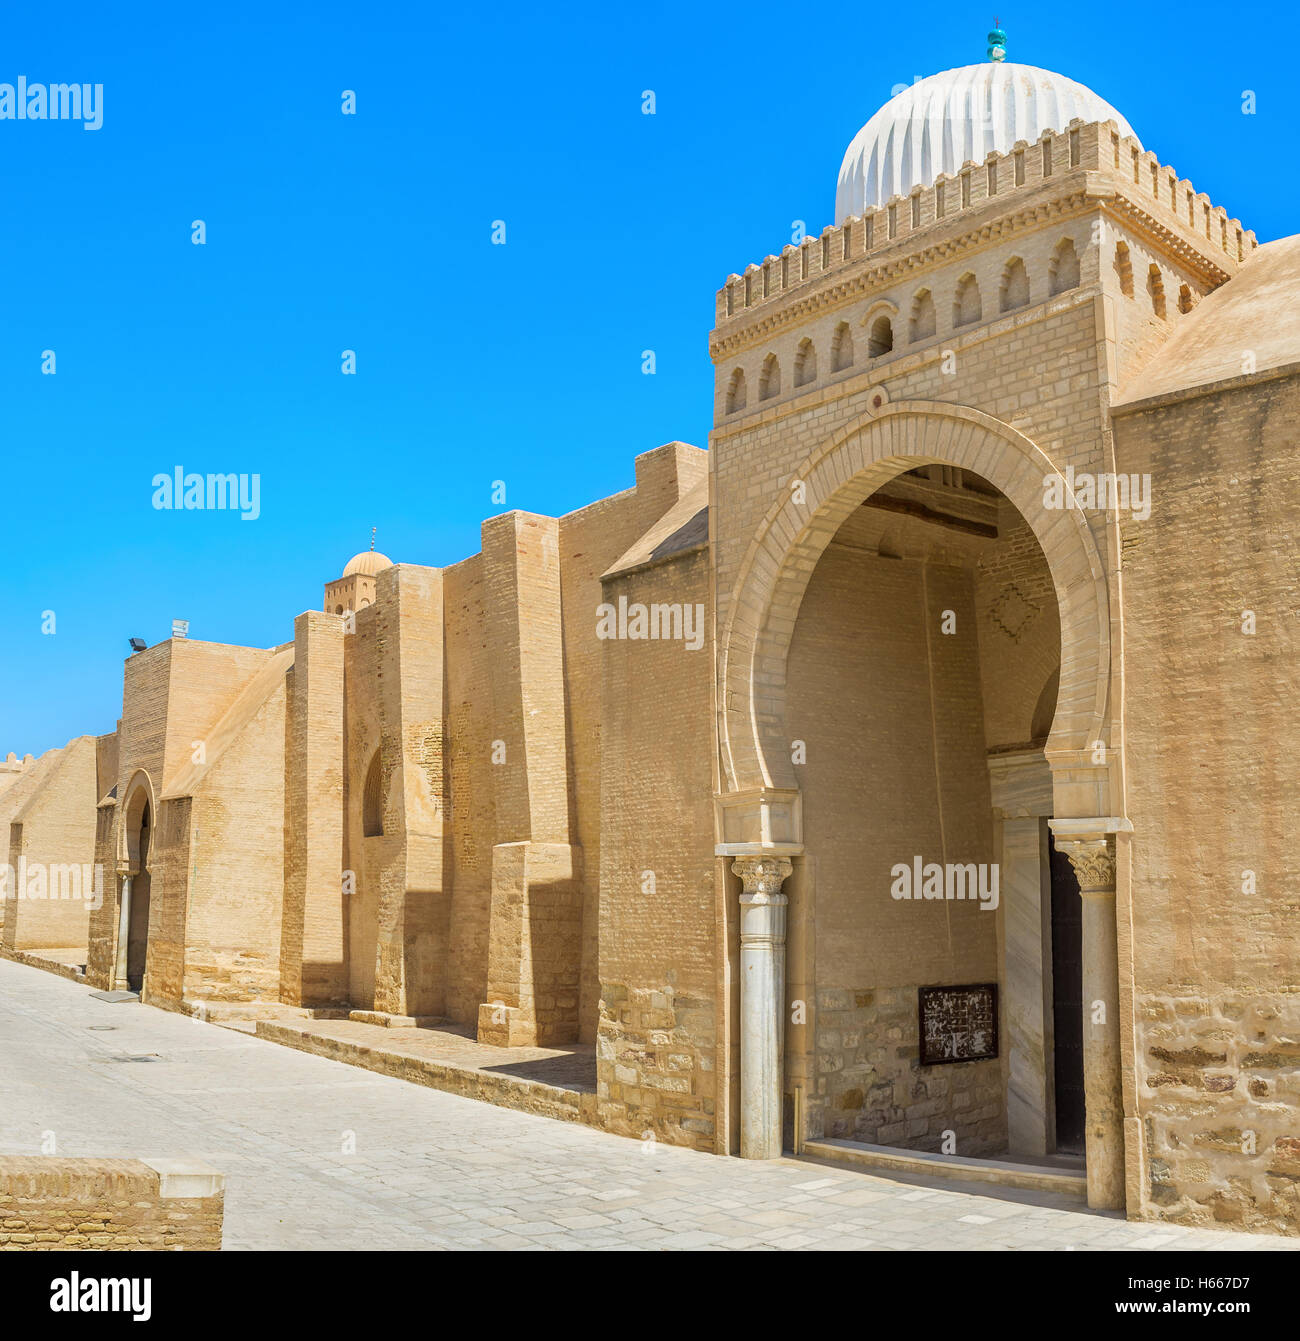 The outer wall of the Grand Mosque is the huge medieval rampart with gates in arabic style with beautiful domes, - Stock Image